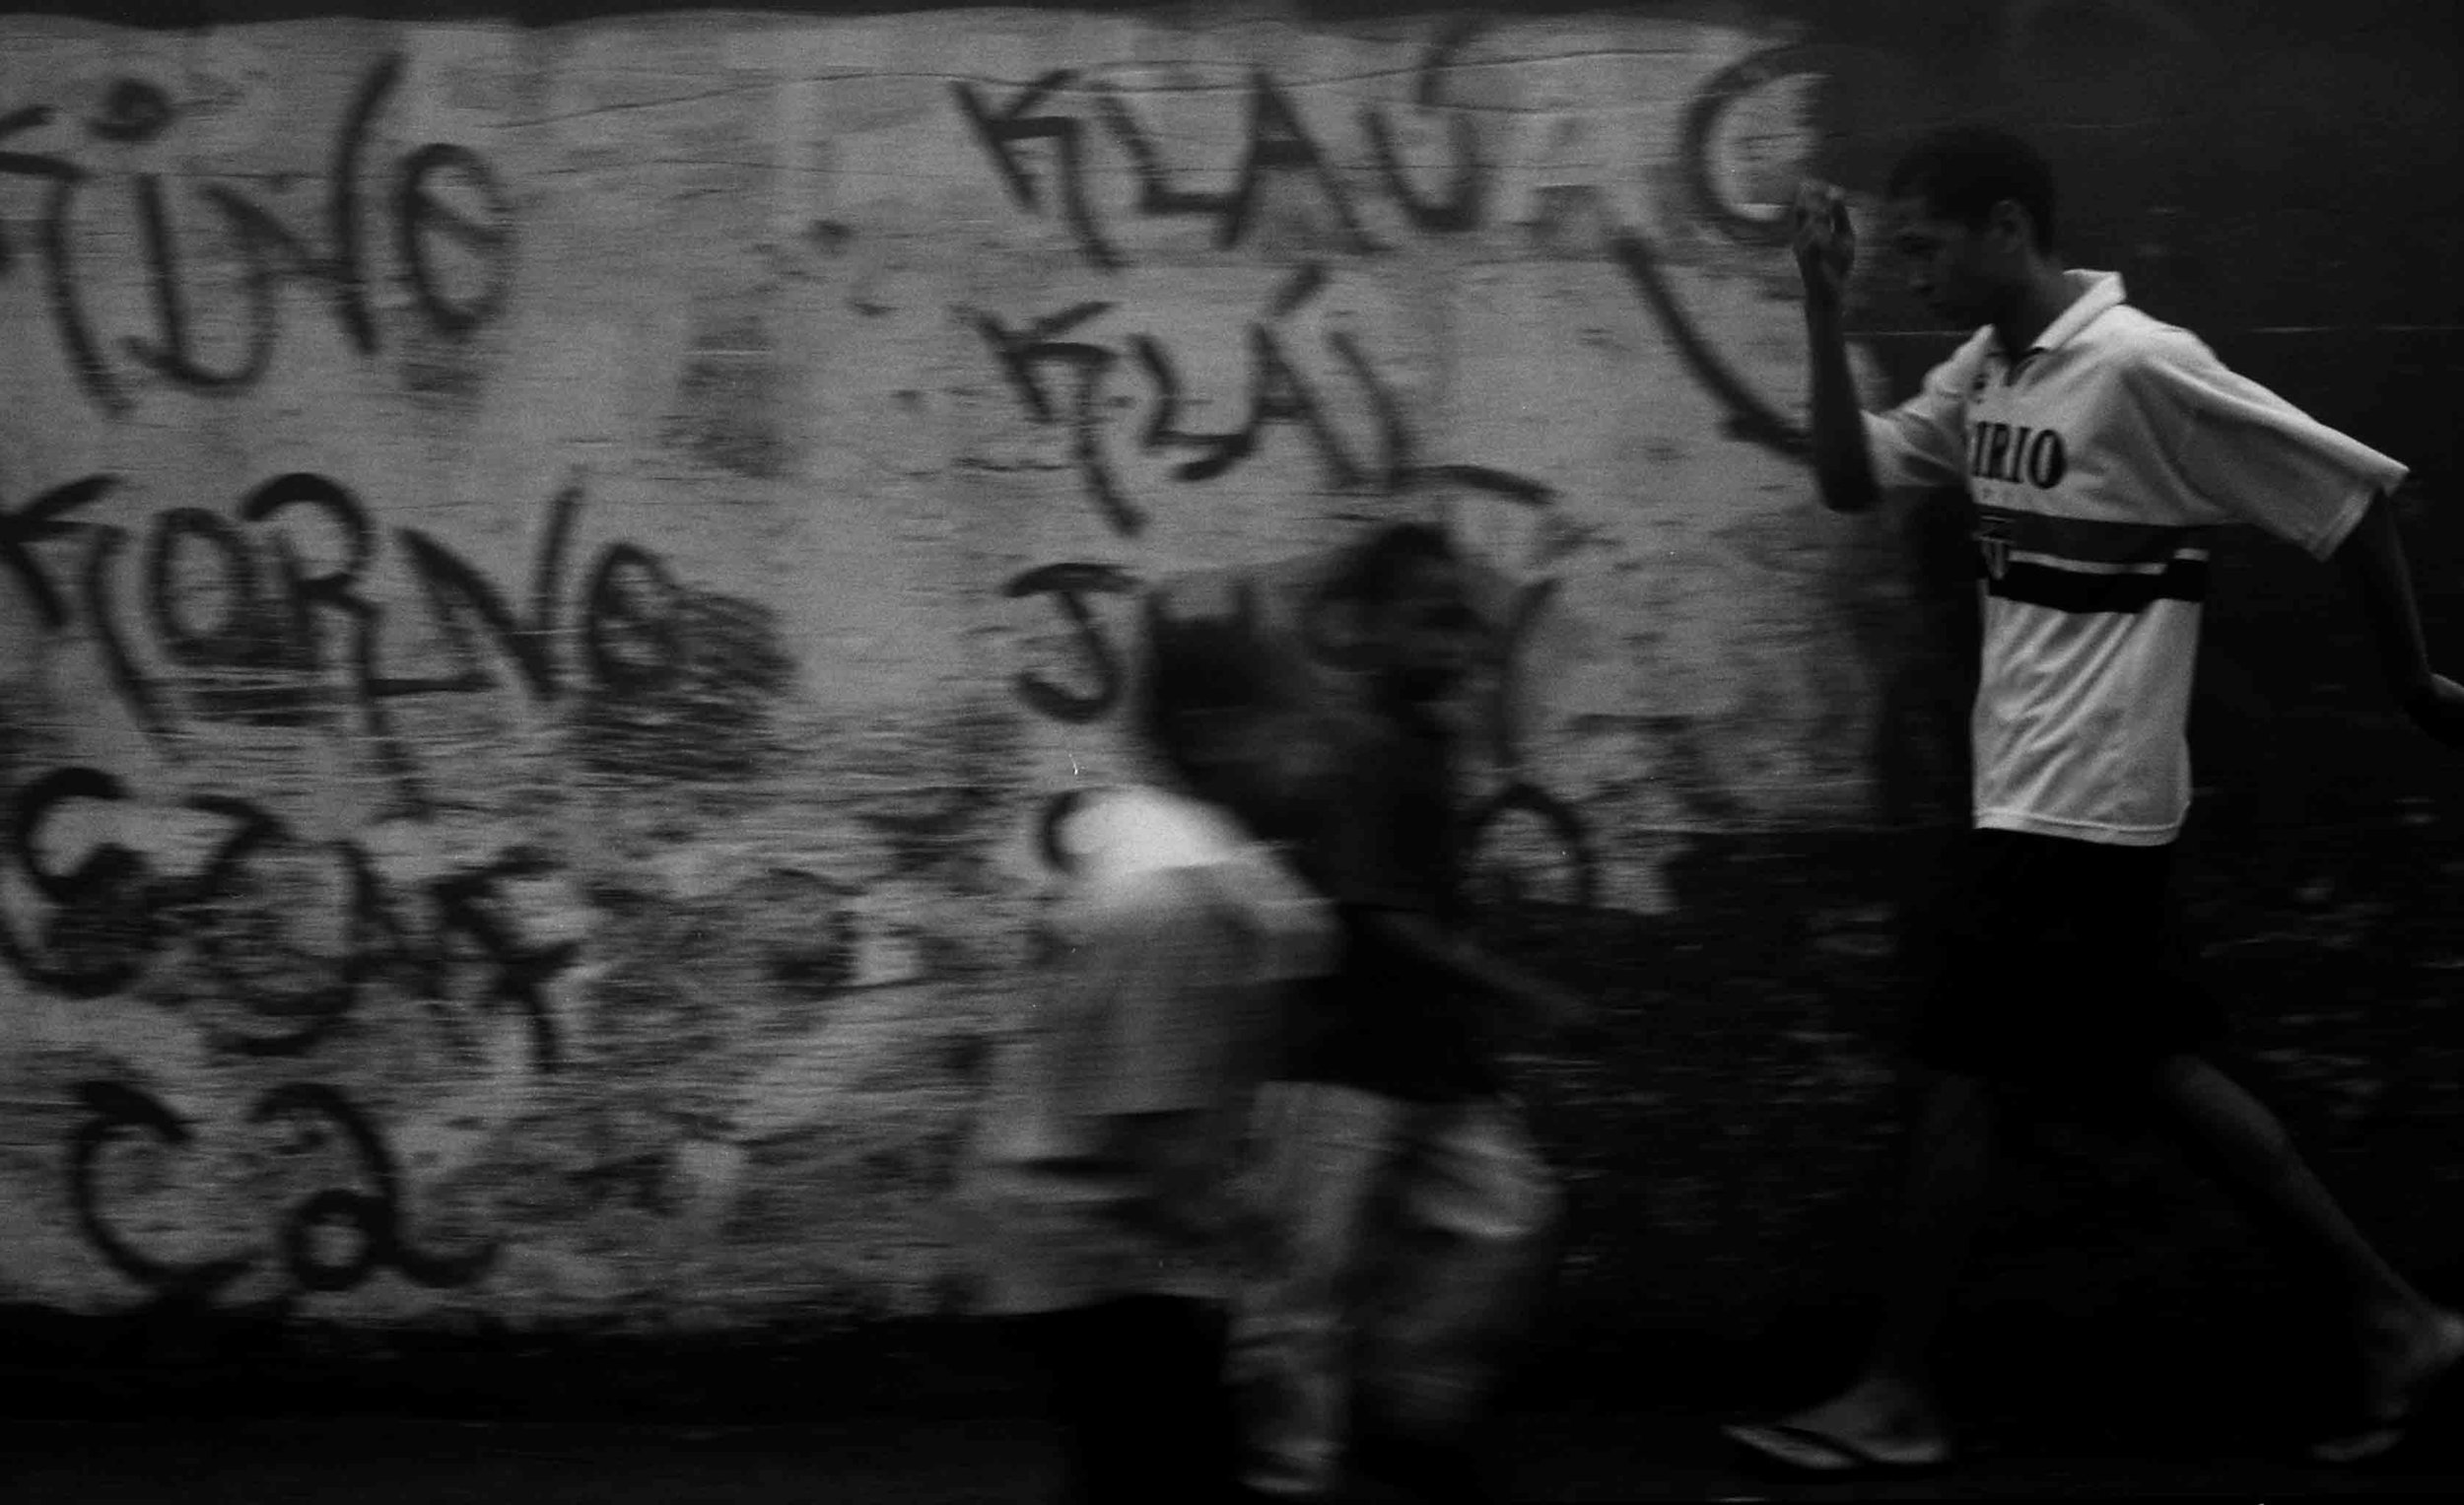 Boy on Street with Graffiti copy.jpg